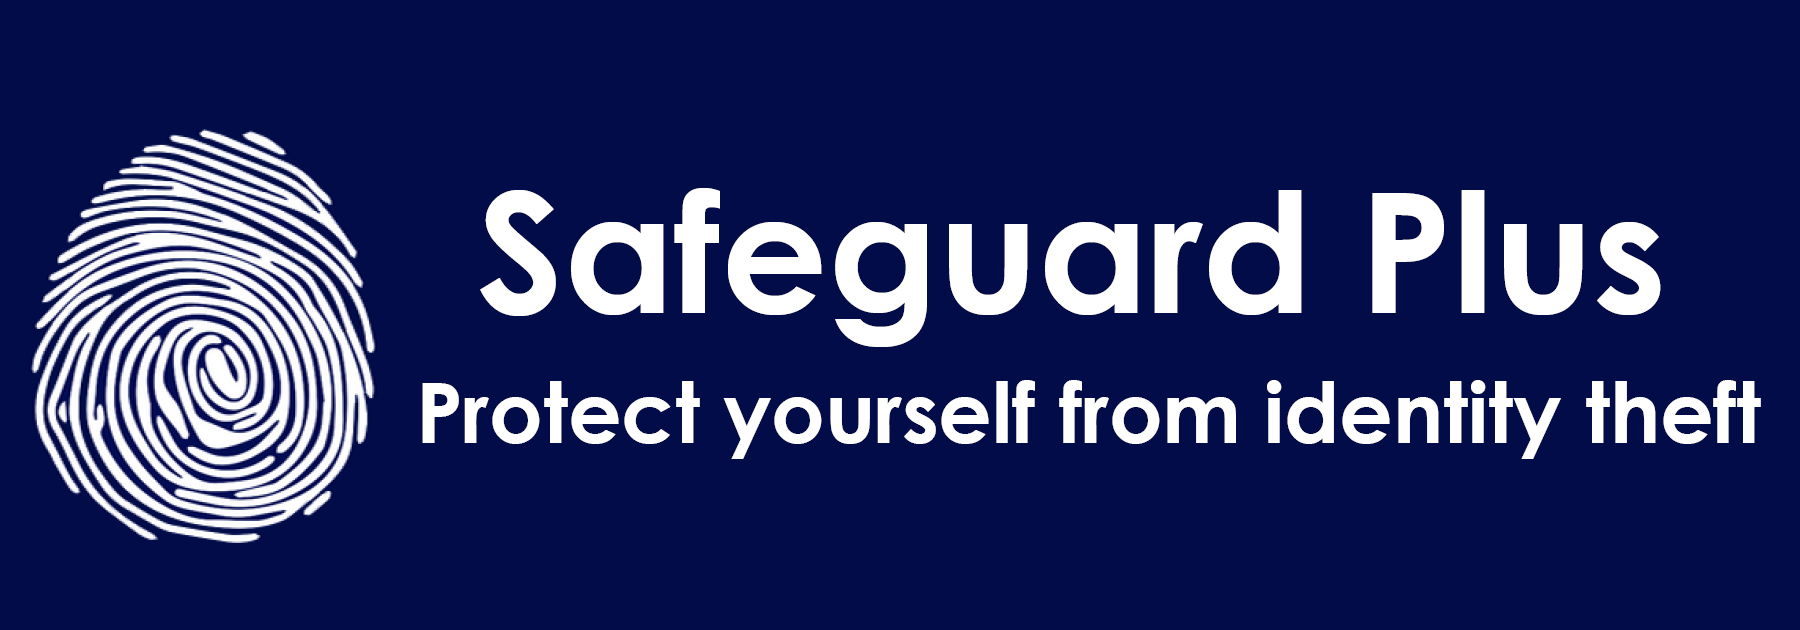 Safeguard Plus